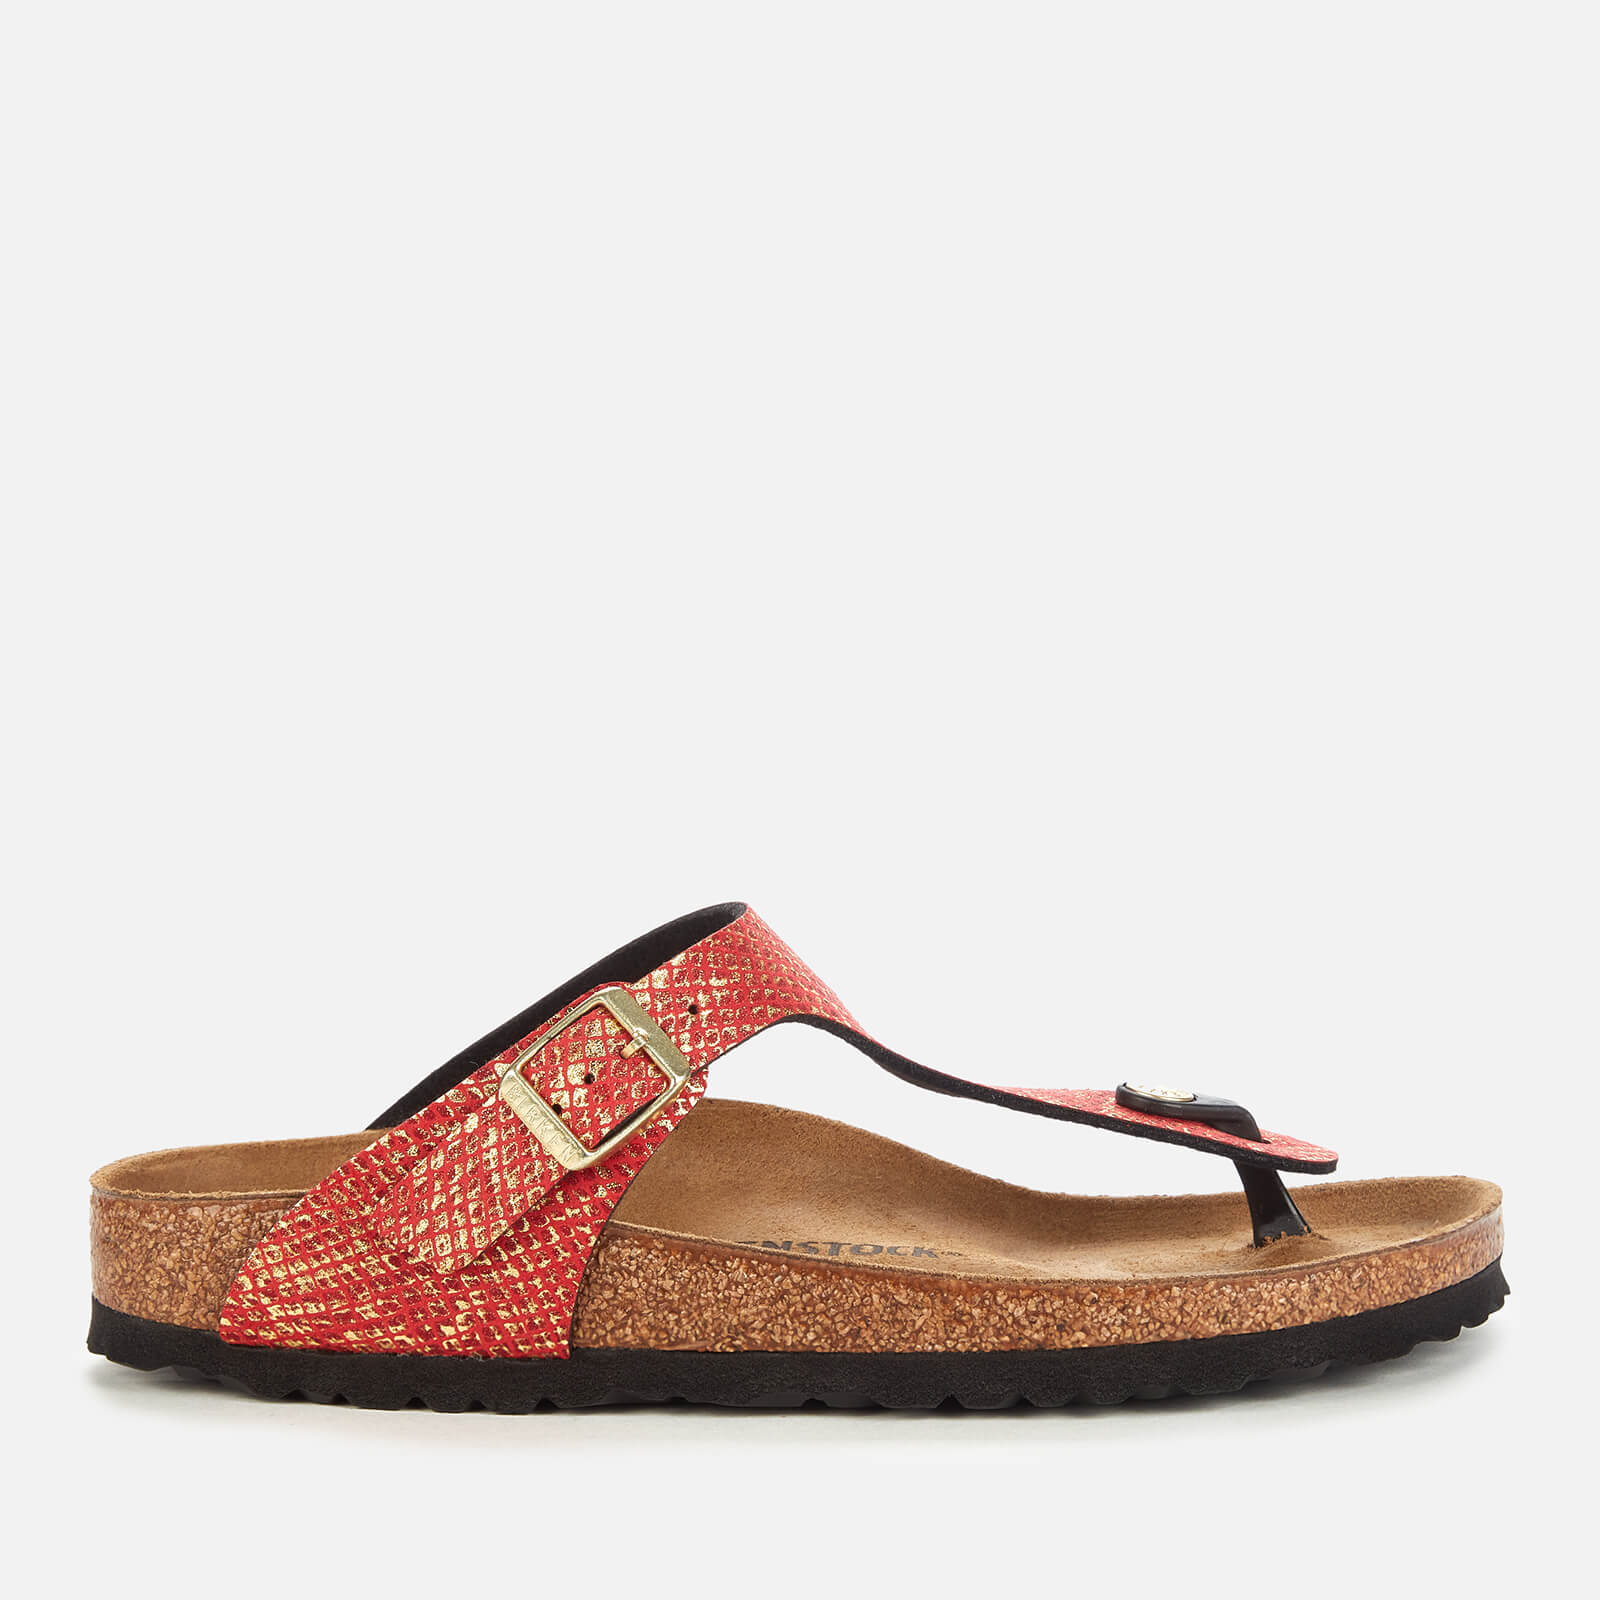 Birkenstock Womens Shiny Python Gizeh Toe Post Sandals Red Eu 38 Uk 5